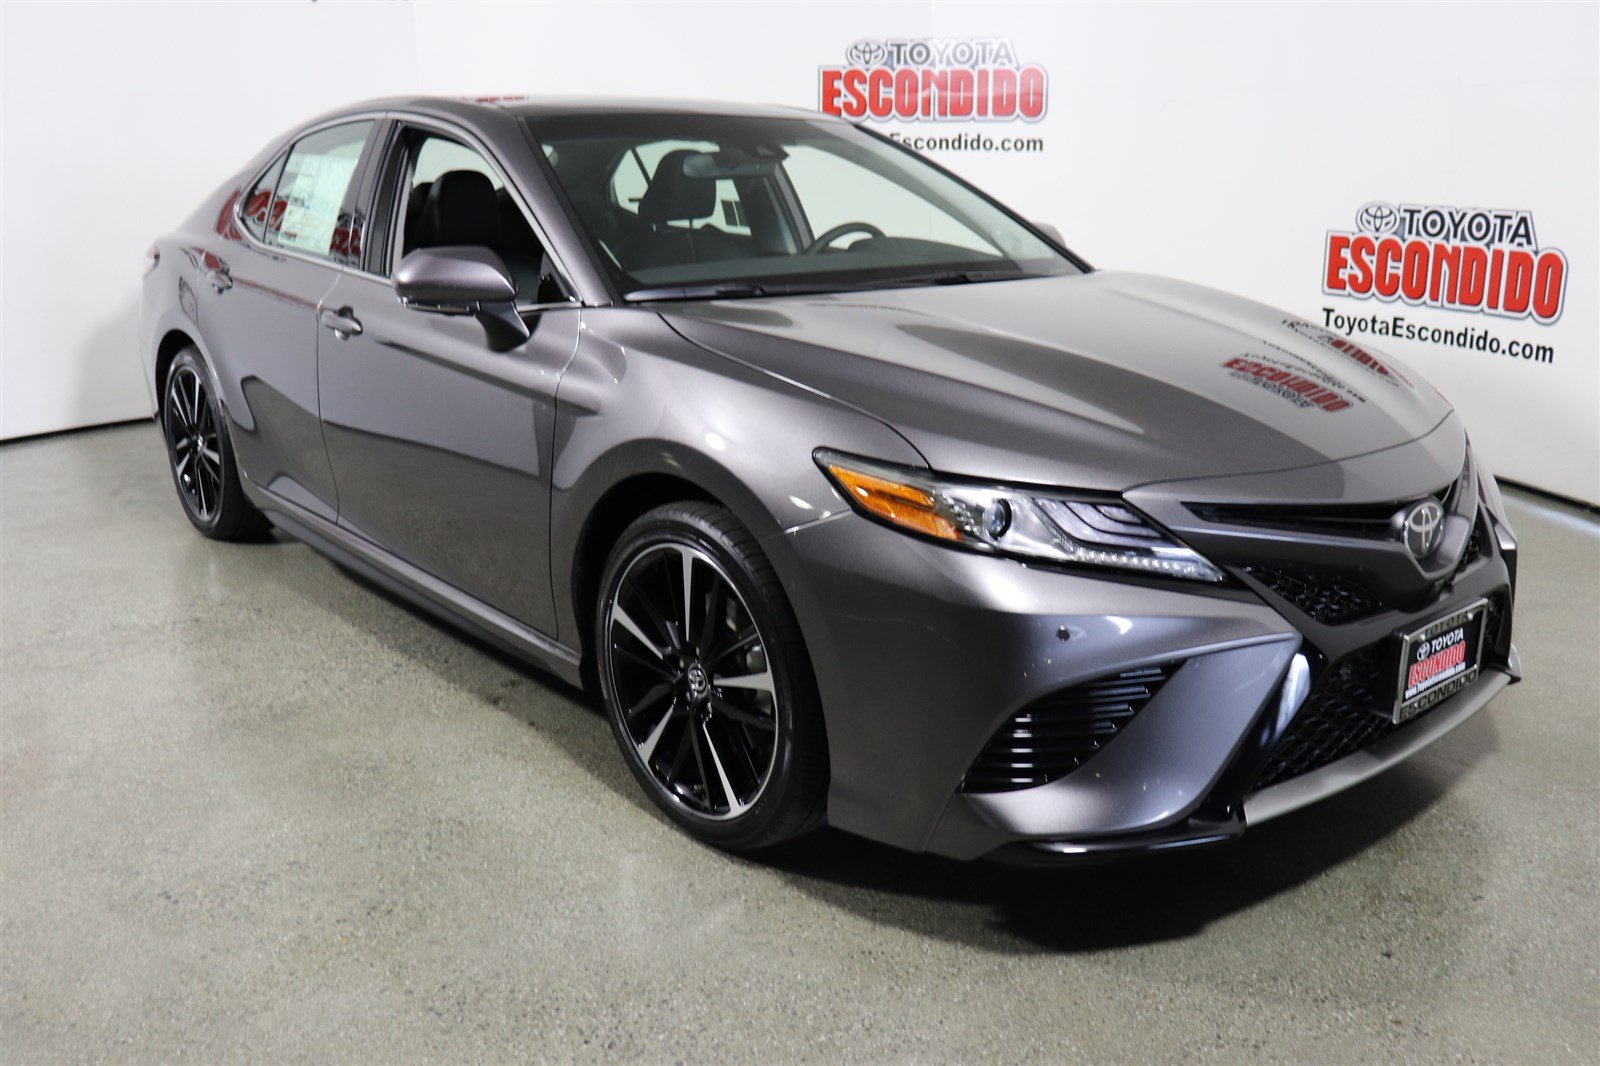 new 2018 toyota camry xse v6 4dr car in escondido 1018067 toyota escondido. Black Bedroom Furniture Sets. Home Design Ideas